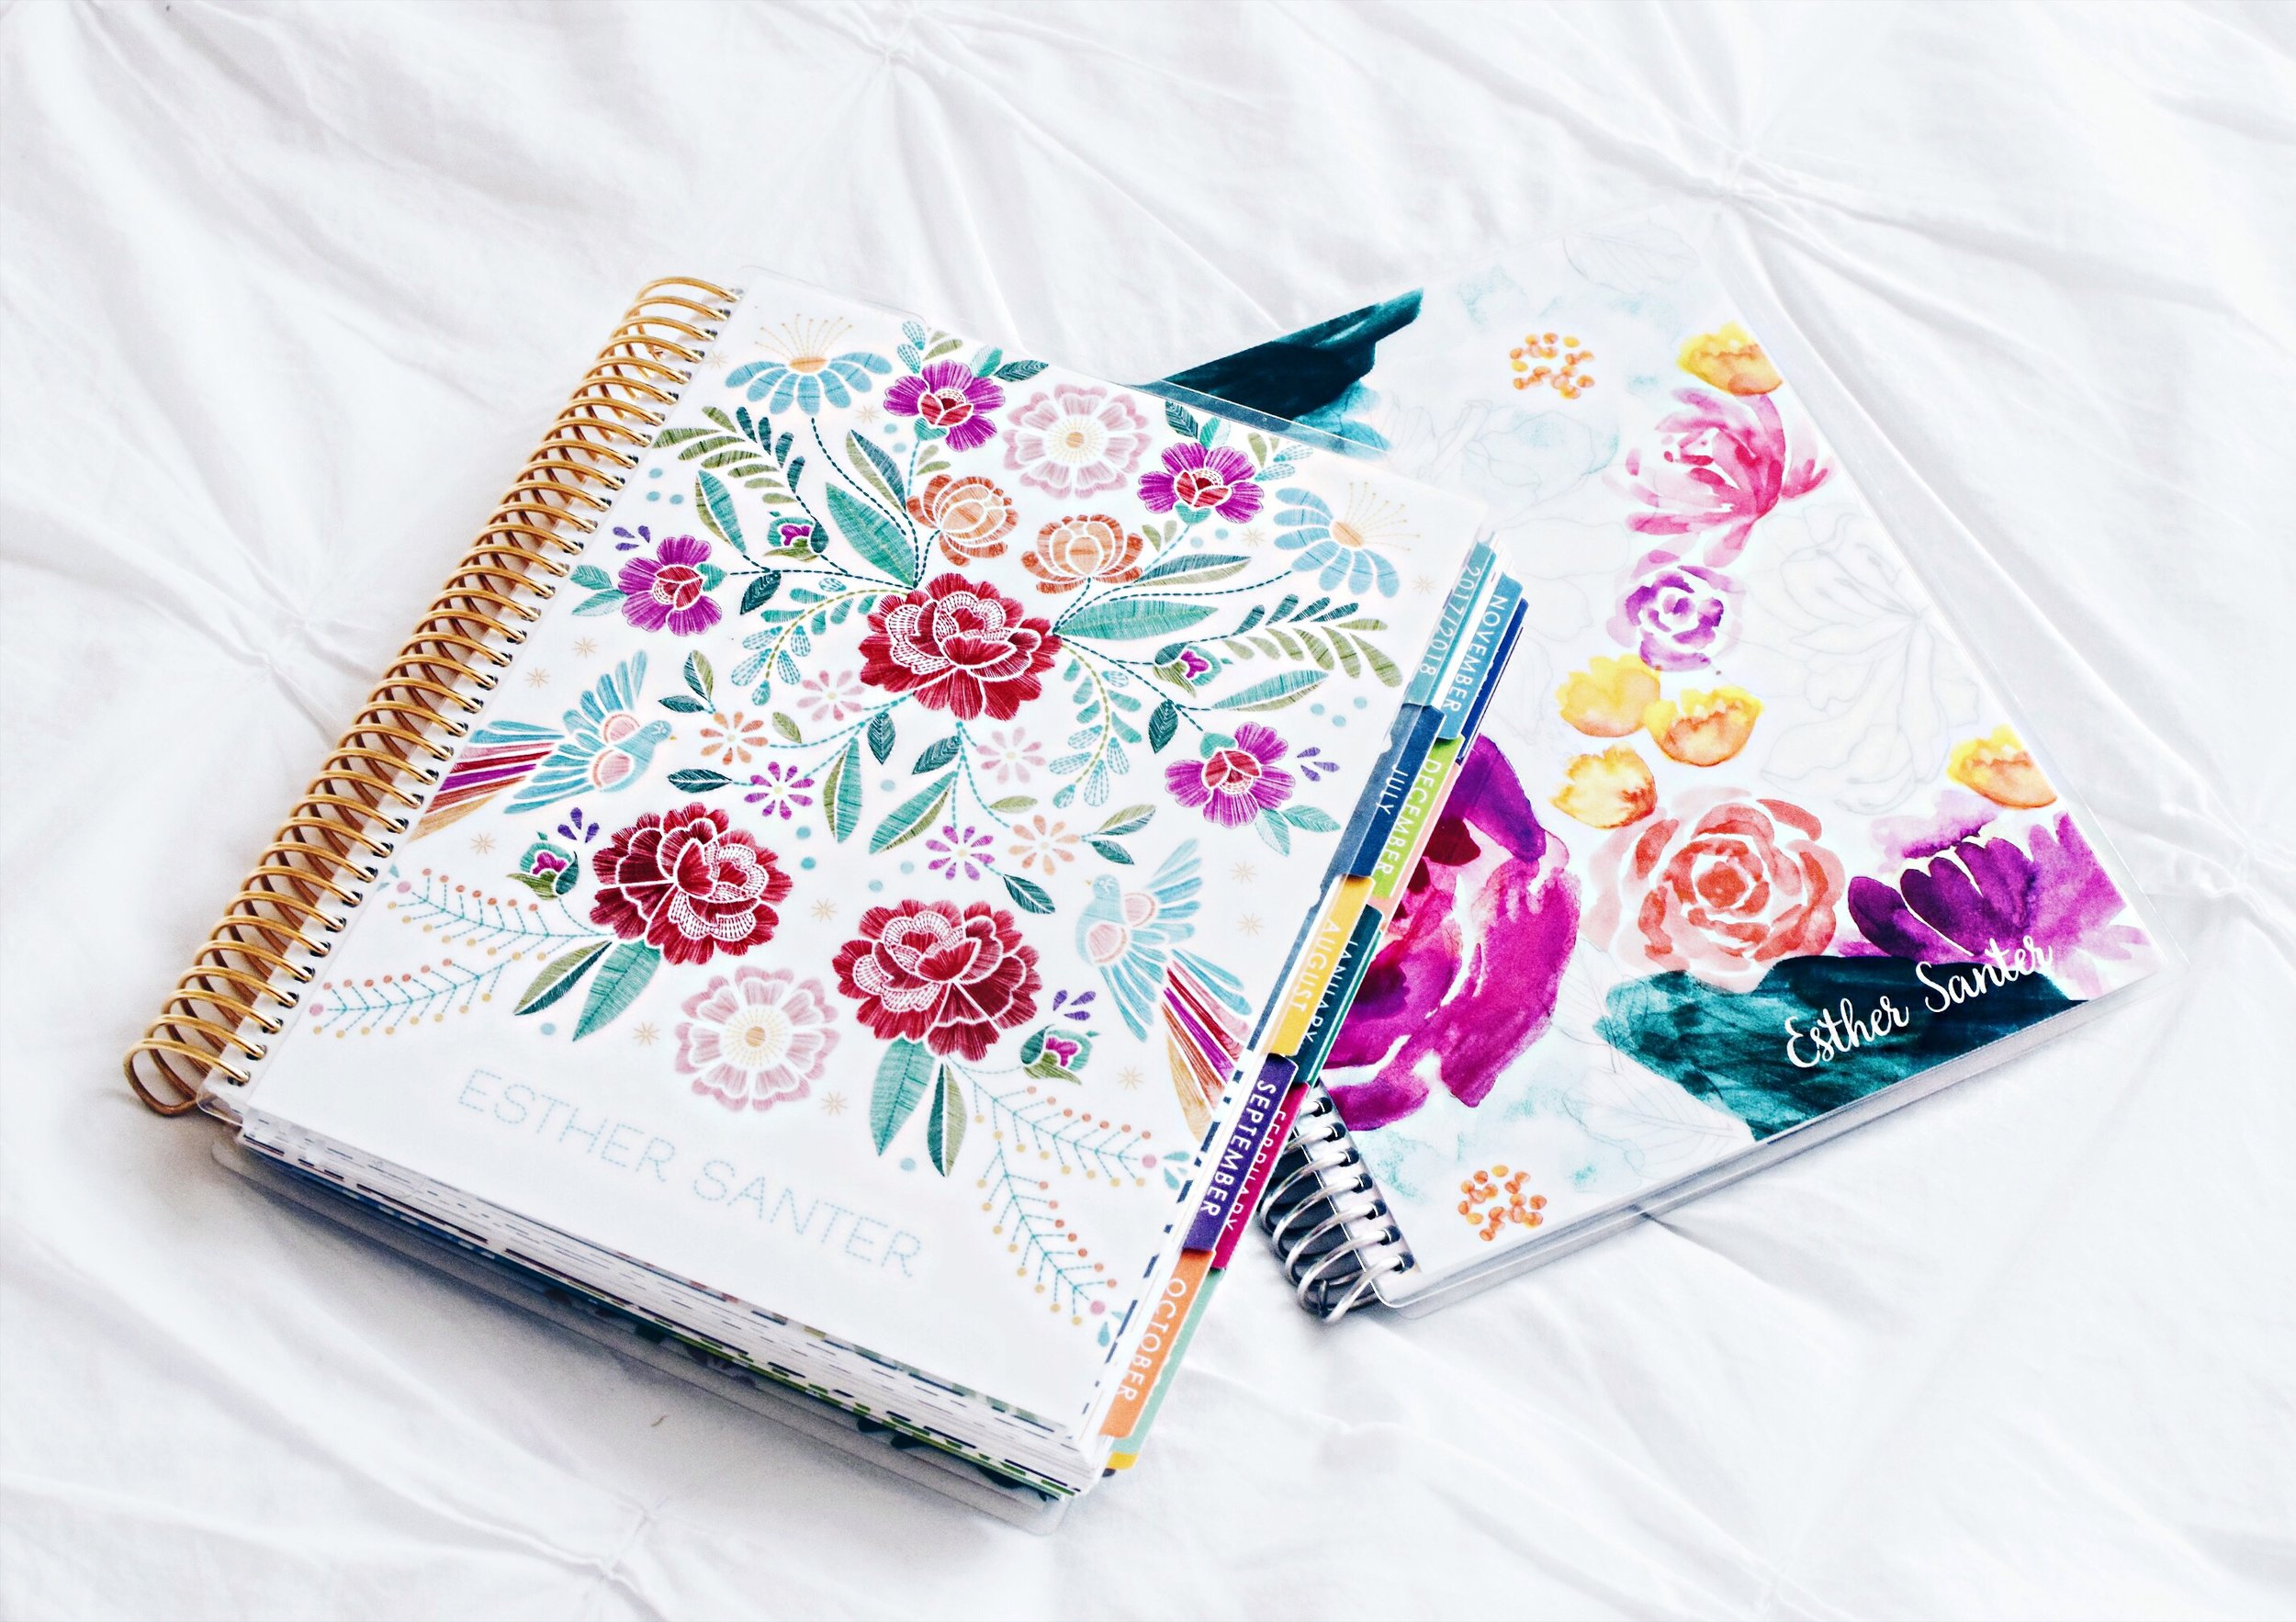 Planner Heaven At The Erin Condren Launch Party Esther Santer Fashion Blog NYC Street Style Blogger Trendy Girl Women Flatlay Paper Stationary Cardstock Pens Markers Colorful Fun Bold Pretty Notebook Floral Design Silver Gold Customizable Personalize.JPG